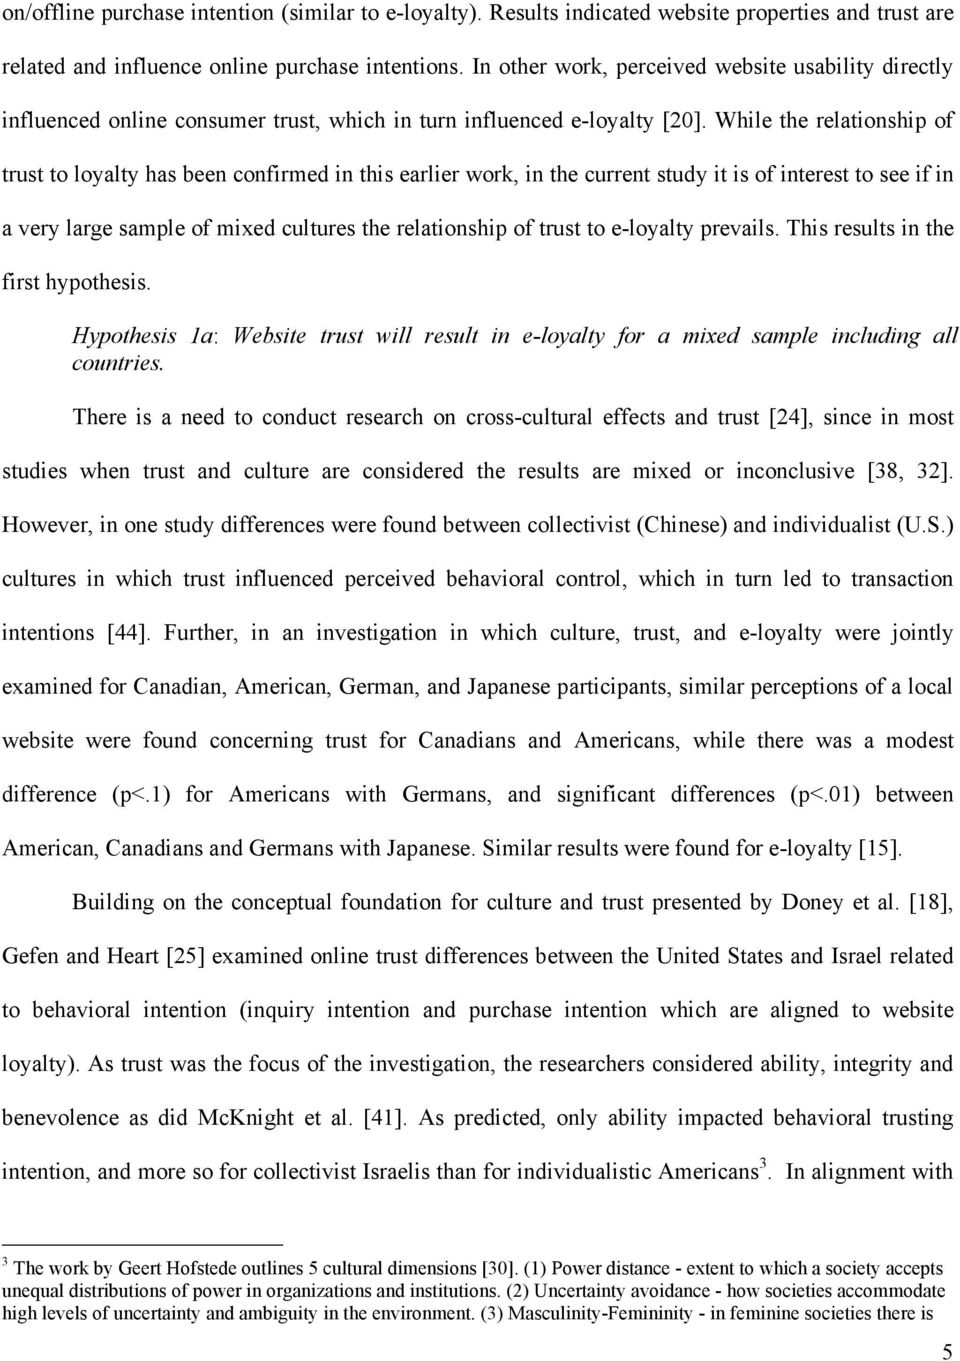 While the relationship of trust to loyalty has been confirmed in this earlier work, in the current study it is of interest to see if in a very large sample of mixed cultures the relationship of trust